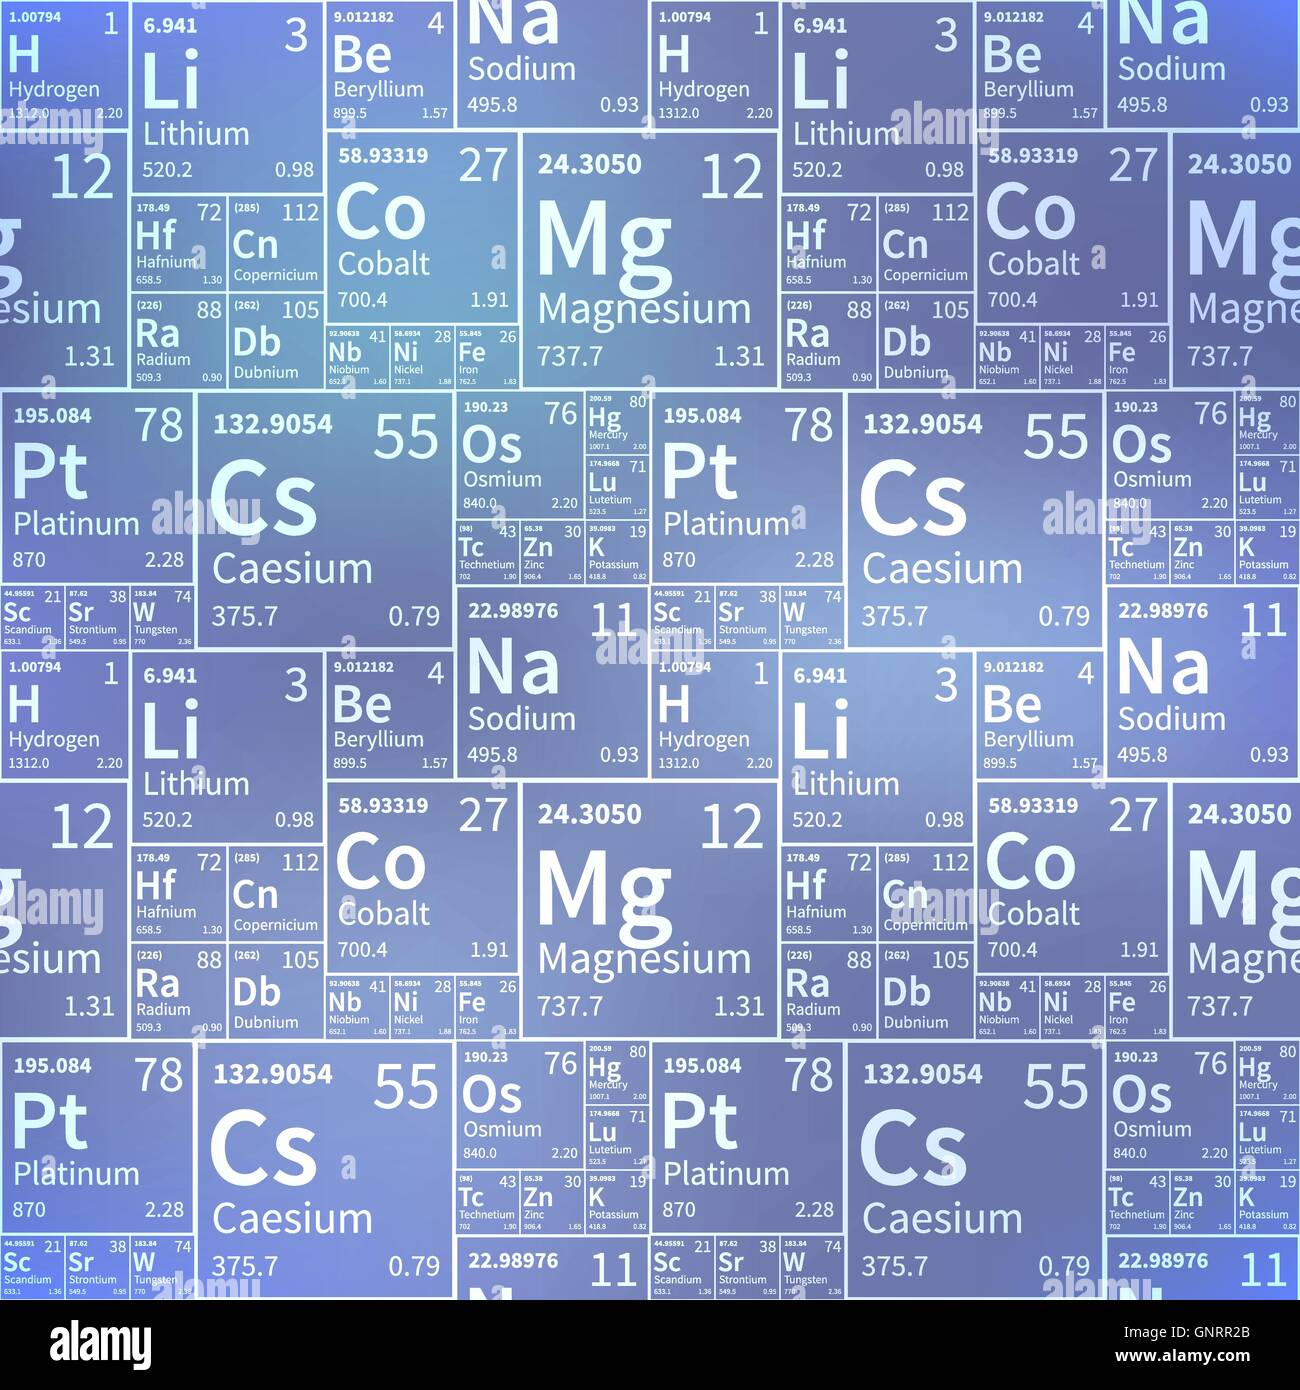 Chemical elements from periodic table white icons on blurred stock chemical elements from periodic table white icons on blurred background seamless pattern urtaz Choice Image